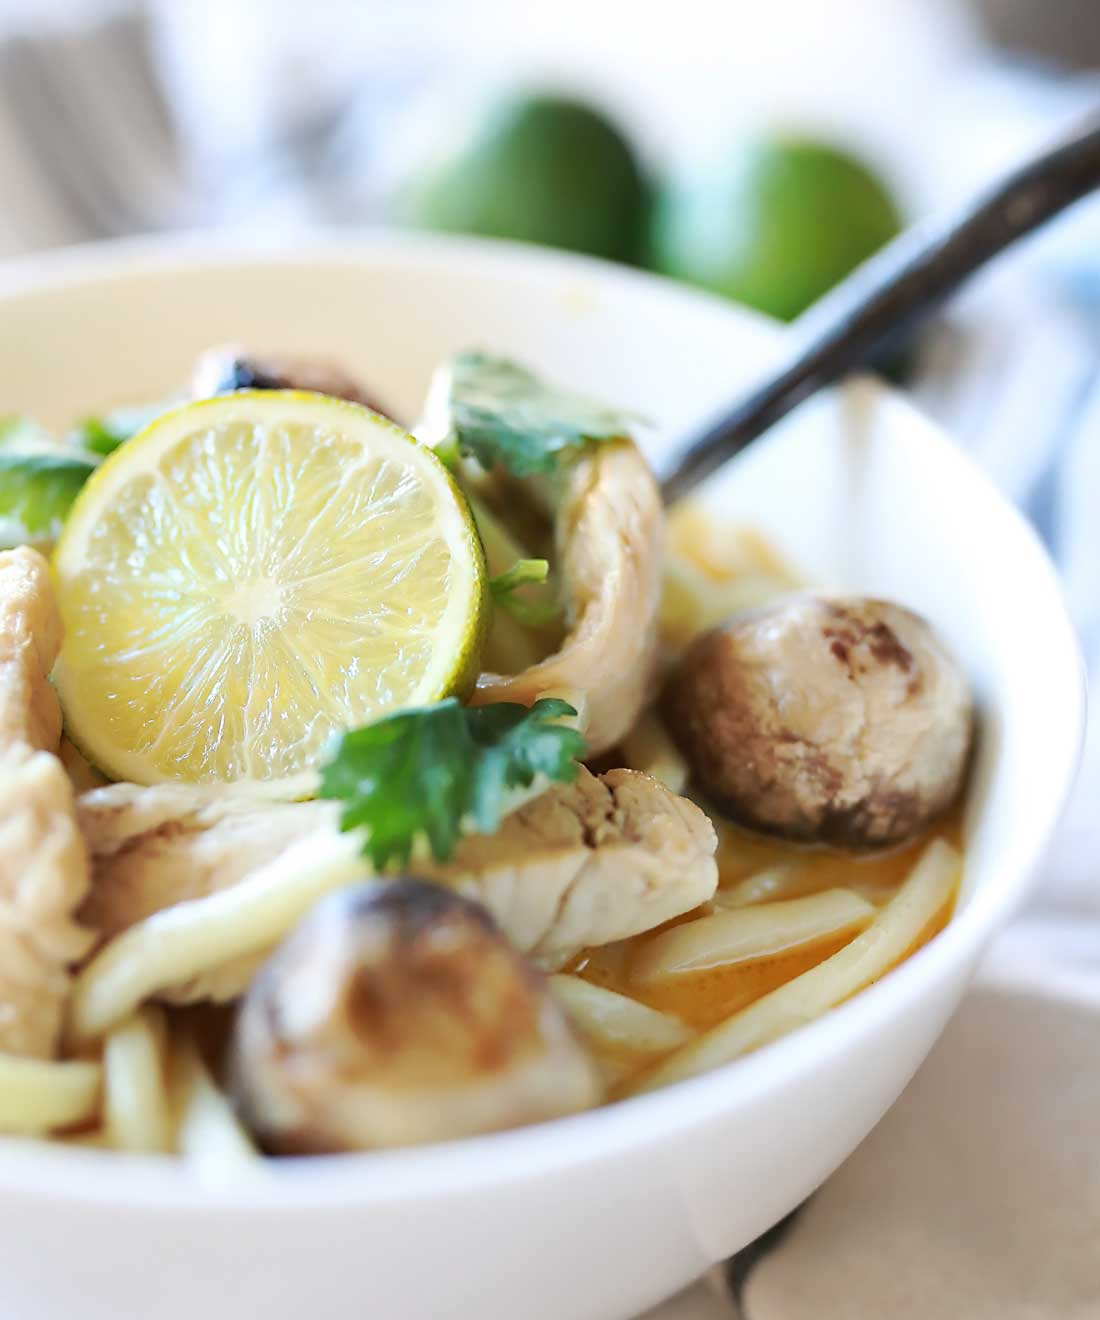 Amazing Thai Coconut soup with lemongrass and lime!